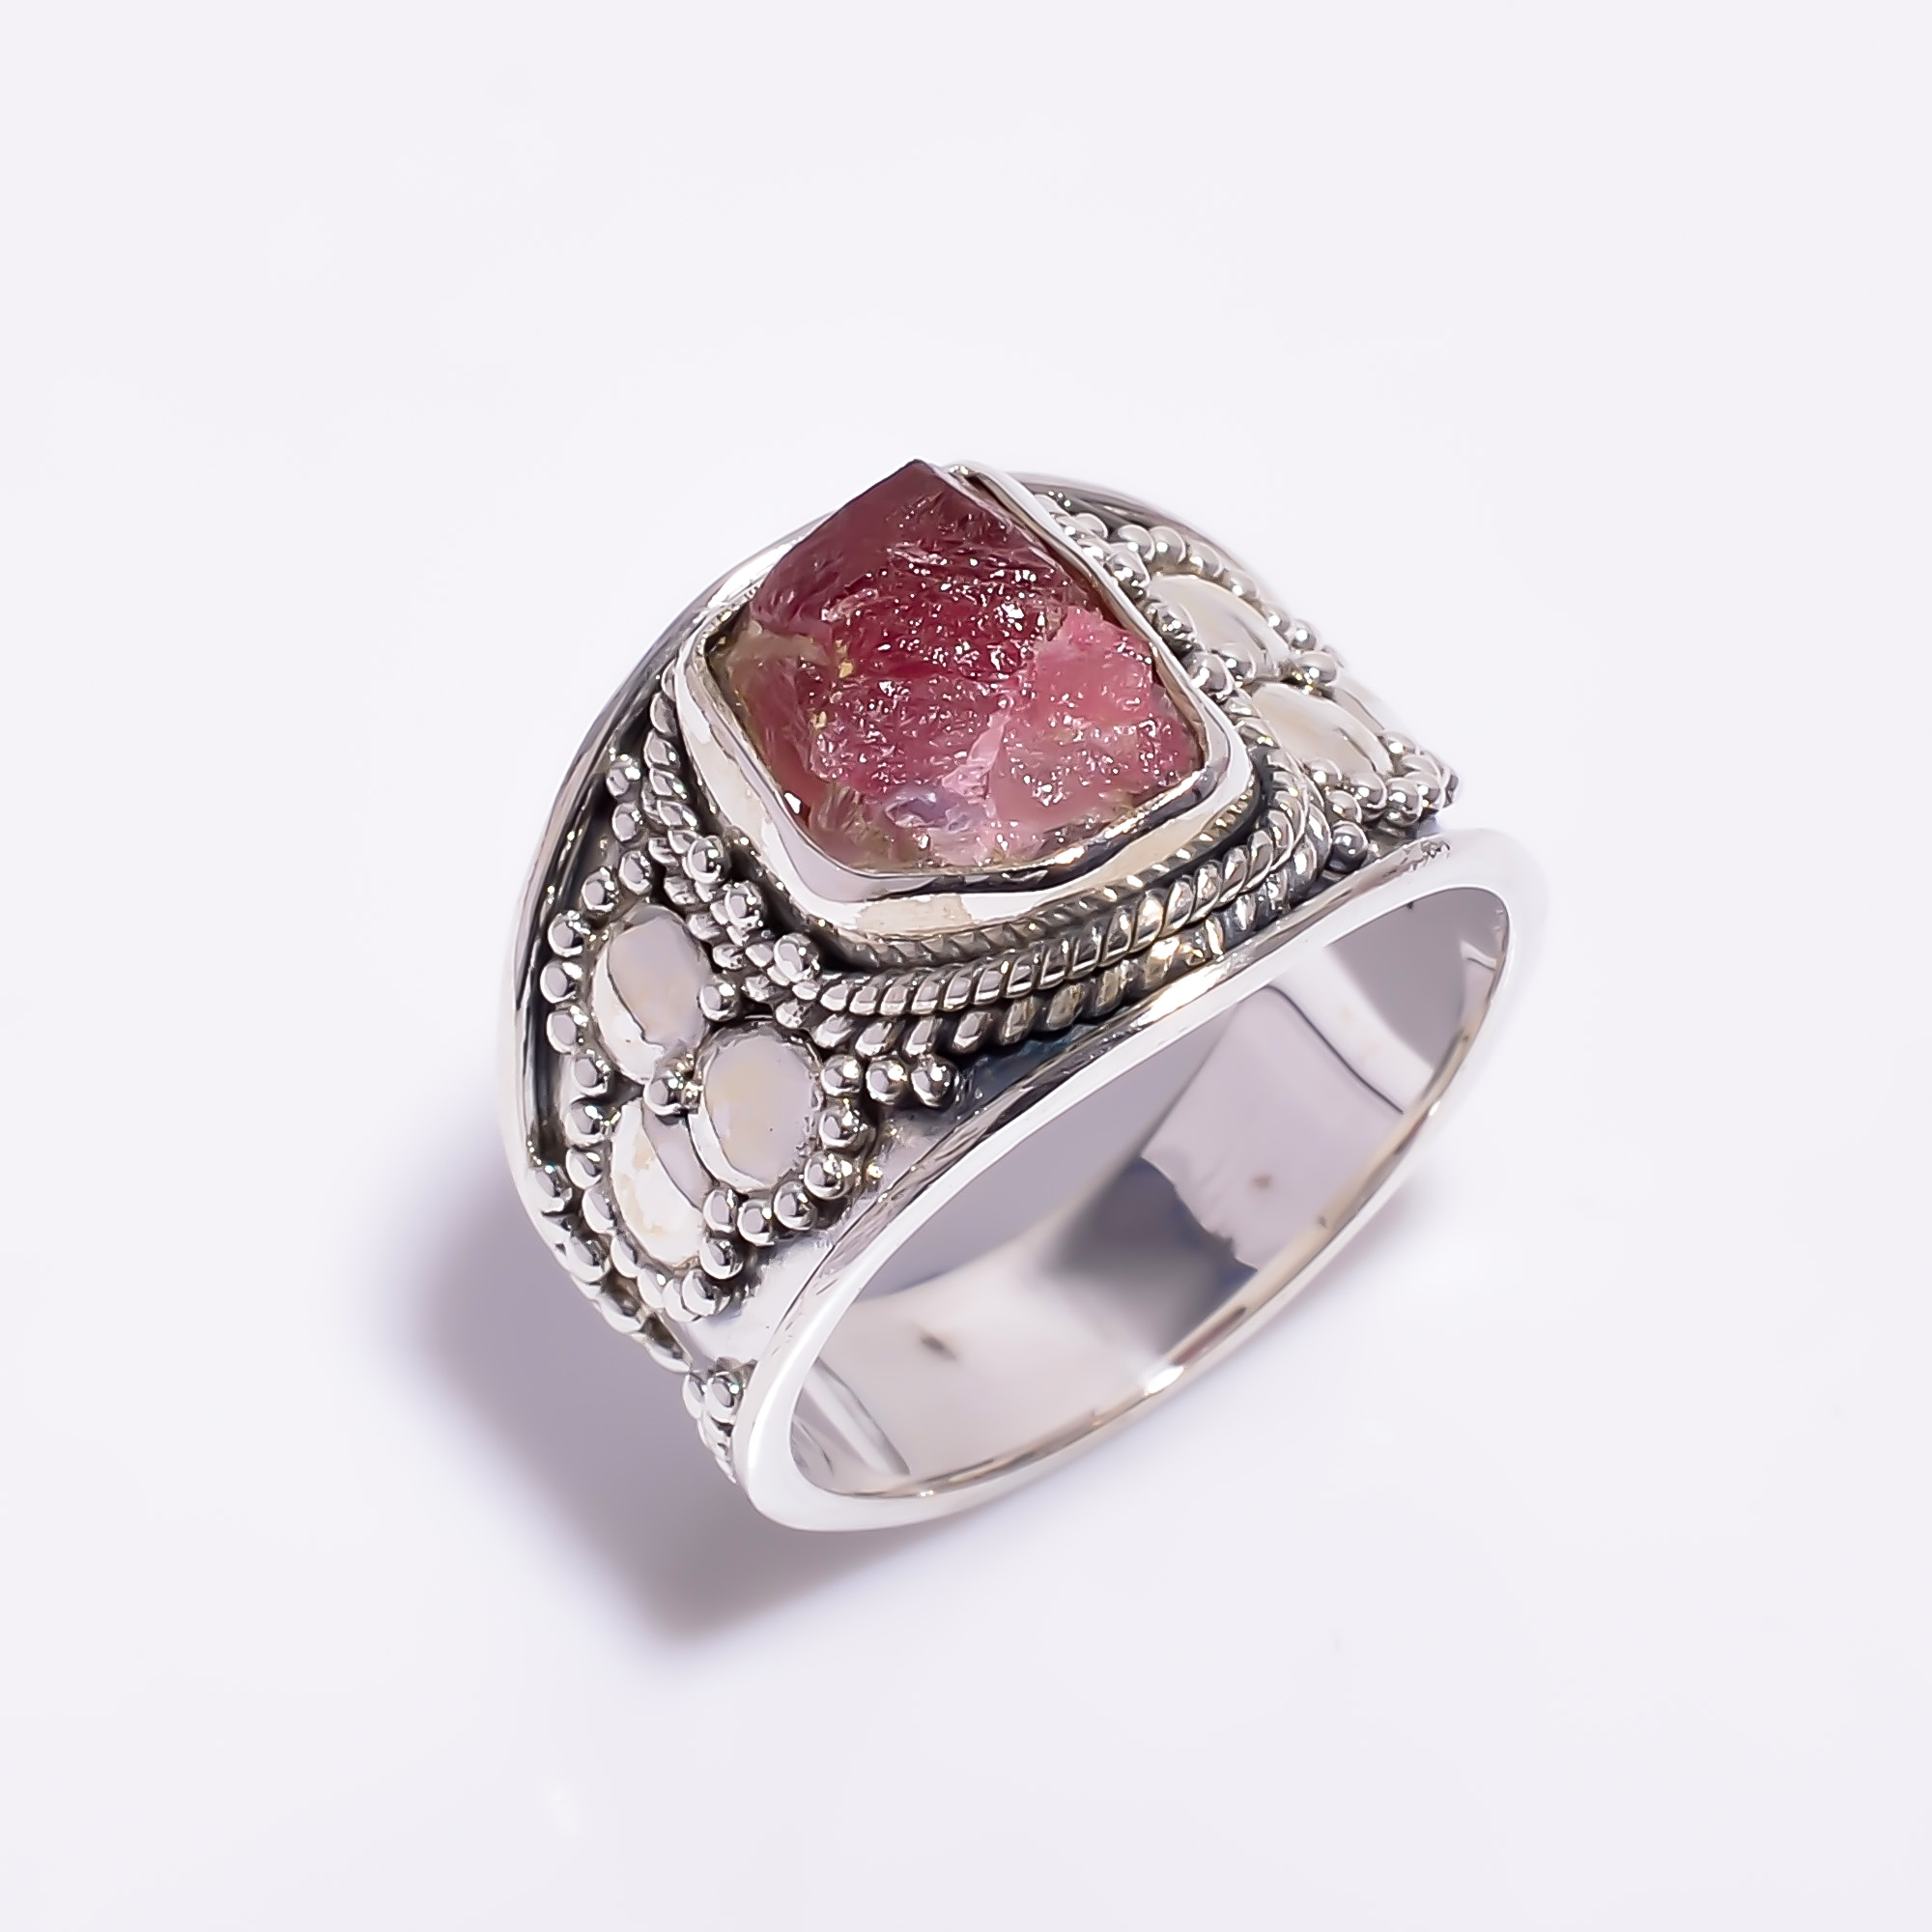 Natural Pink Tourmaline Raw Gemstone 925 Sterling Silver Ring Size US 10